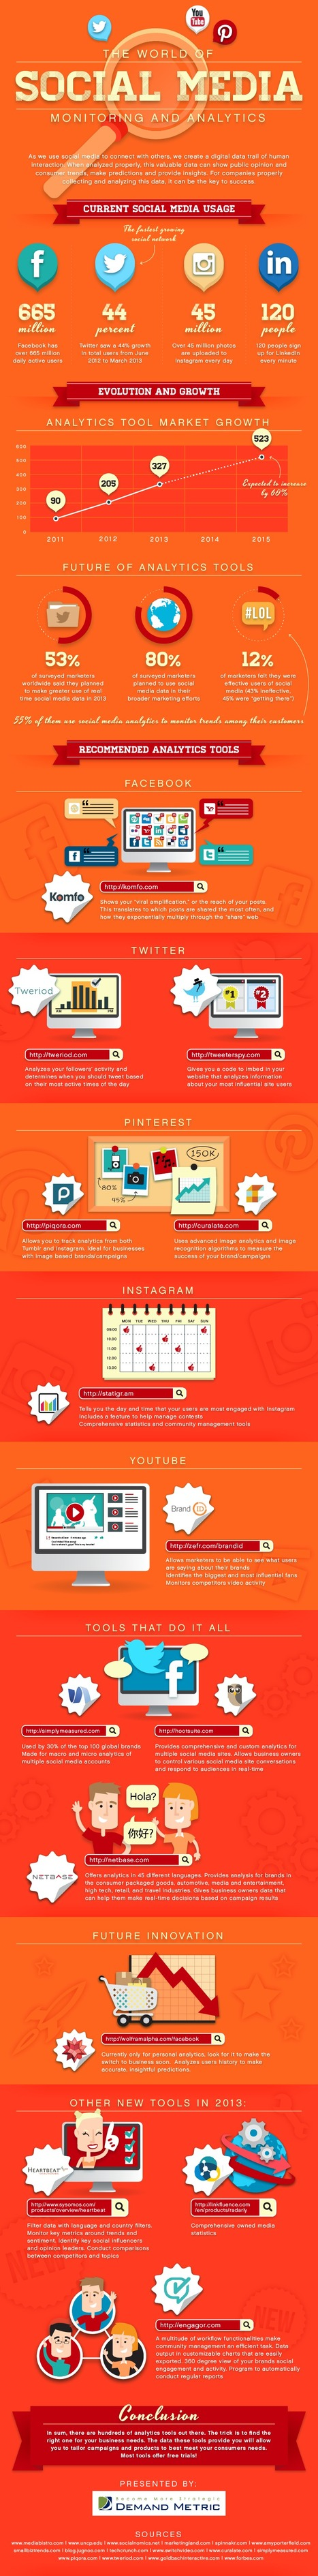 The World of Social Media Monitoring & Analytics  [infographic] | aprendizaje y tic | Scoop.it